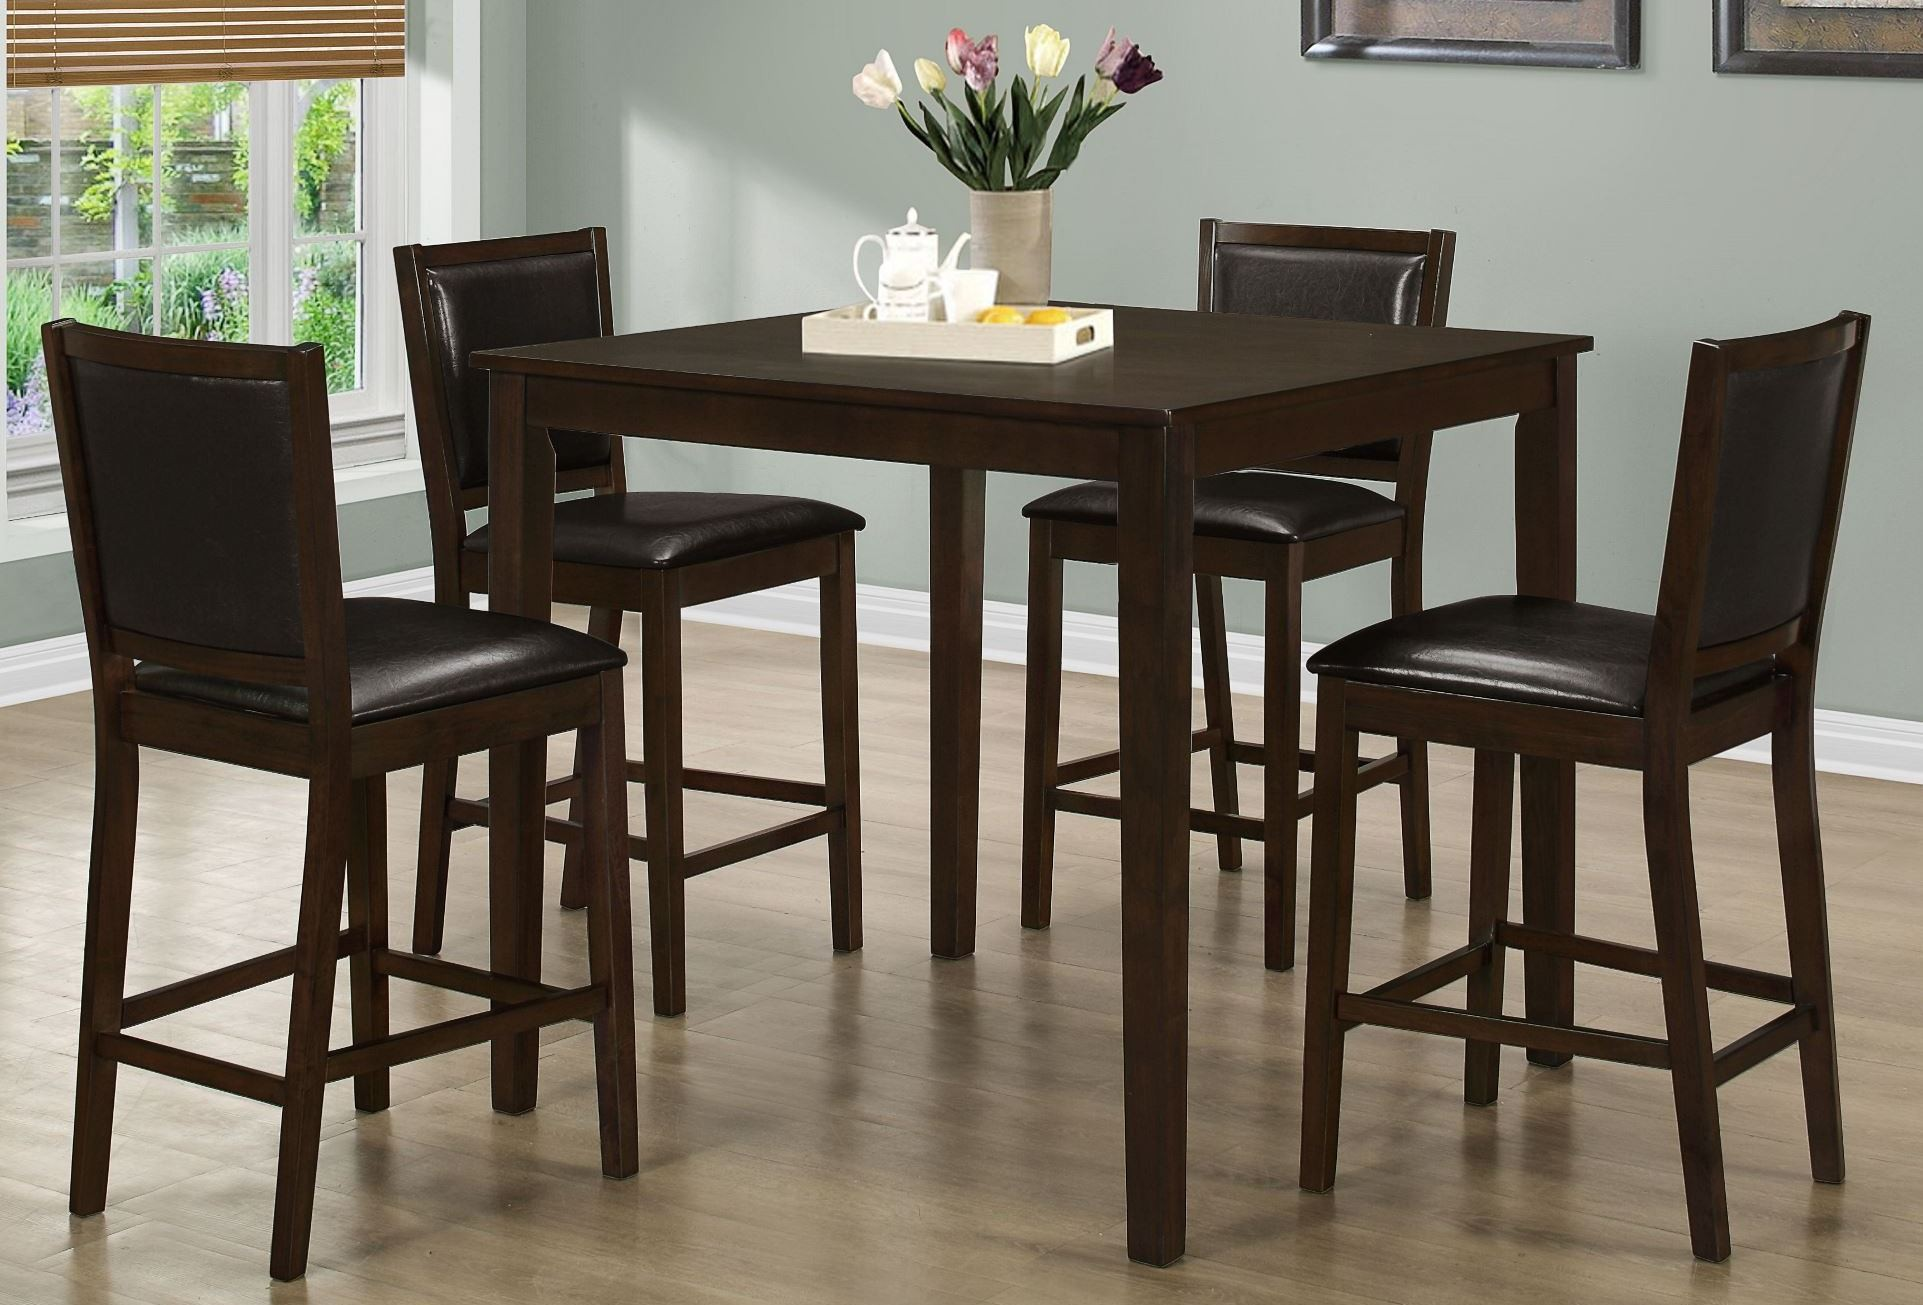 Walnut 5 piece counter height dining room set 1549 monarch for 5 piece dining set